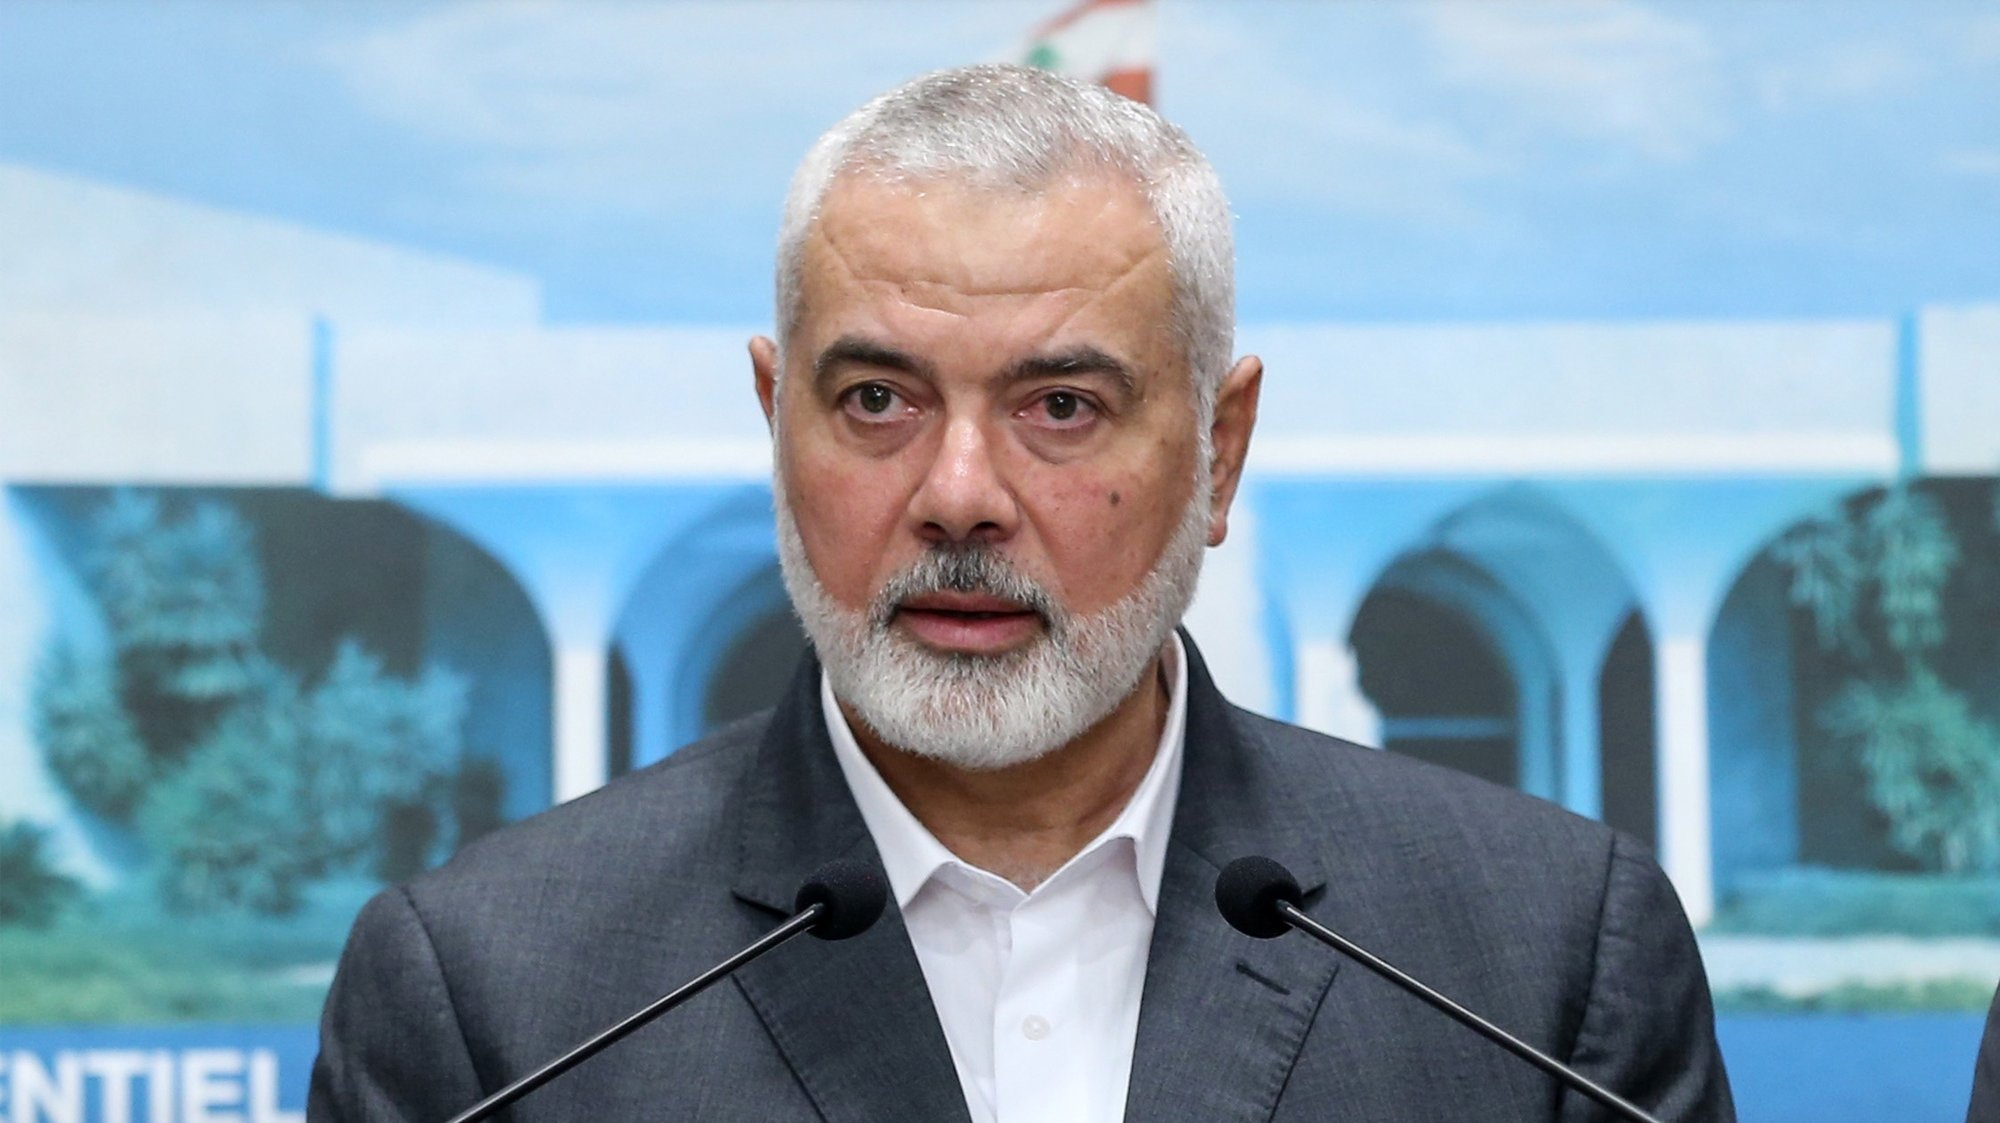 epa09307311 A handout photo made available by the Official Photography of the Lebanese Government Dalati Nohra shows Senior Political Leader of Hamas movement Ismail Haniyeh speaks to media after his meeting with the Lebanese President Michel Aoun at the presidential palace in Baabda east of Beirut, Lebanon, 28 June 2021. Ismail Haniyeh arrived in an official visit to Lebanon, to discuss the situation of the displaced Palestinians  during the economic and political crisis in Lebanon.  EPA/DALATI NOHRA HANDOUT  HANDOUT EDITORIAL USE ONLY/NO SALES